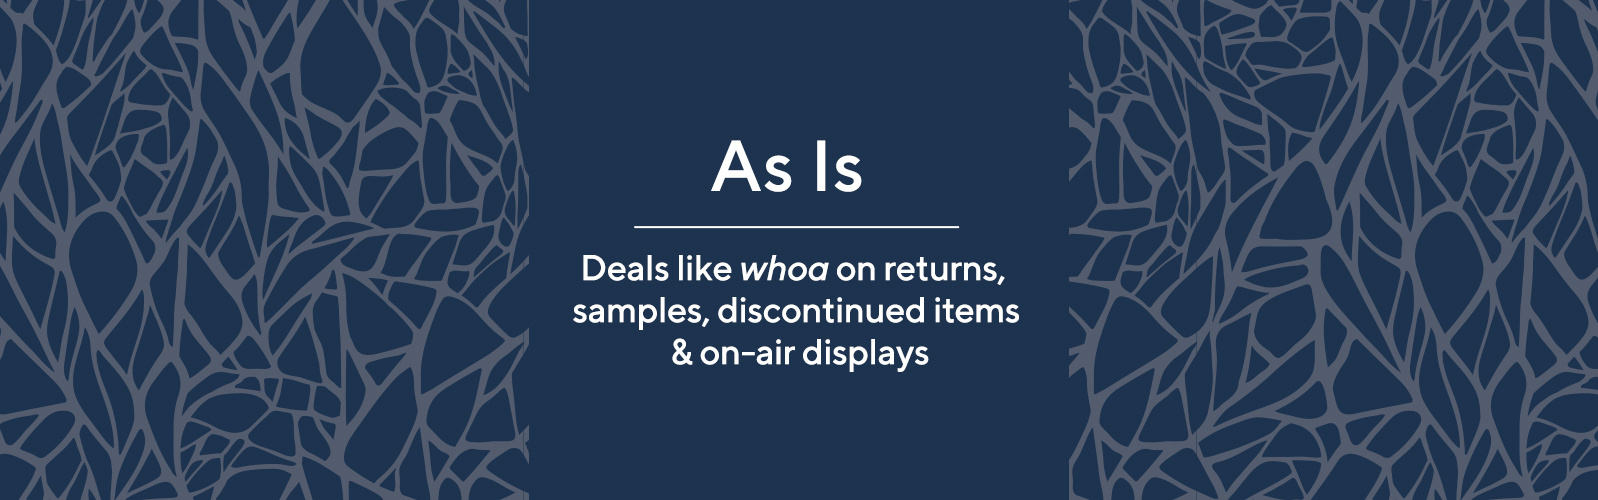 145e9047559c As-Is Products - Discontinued Items